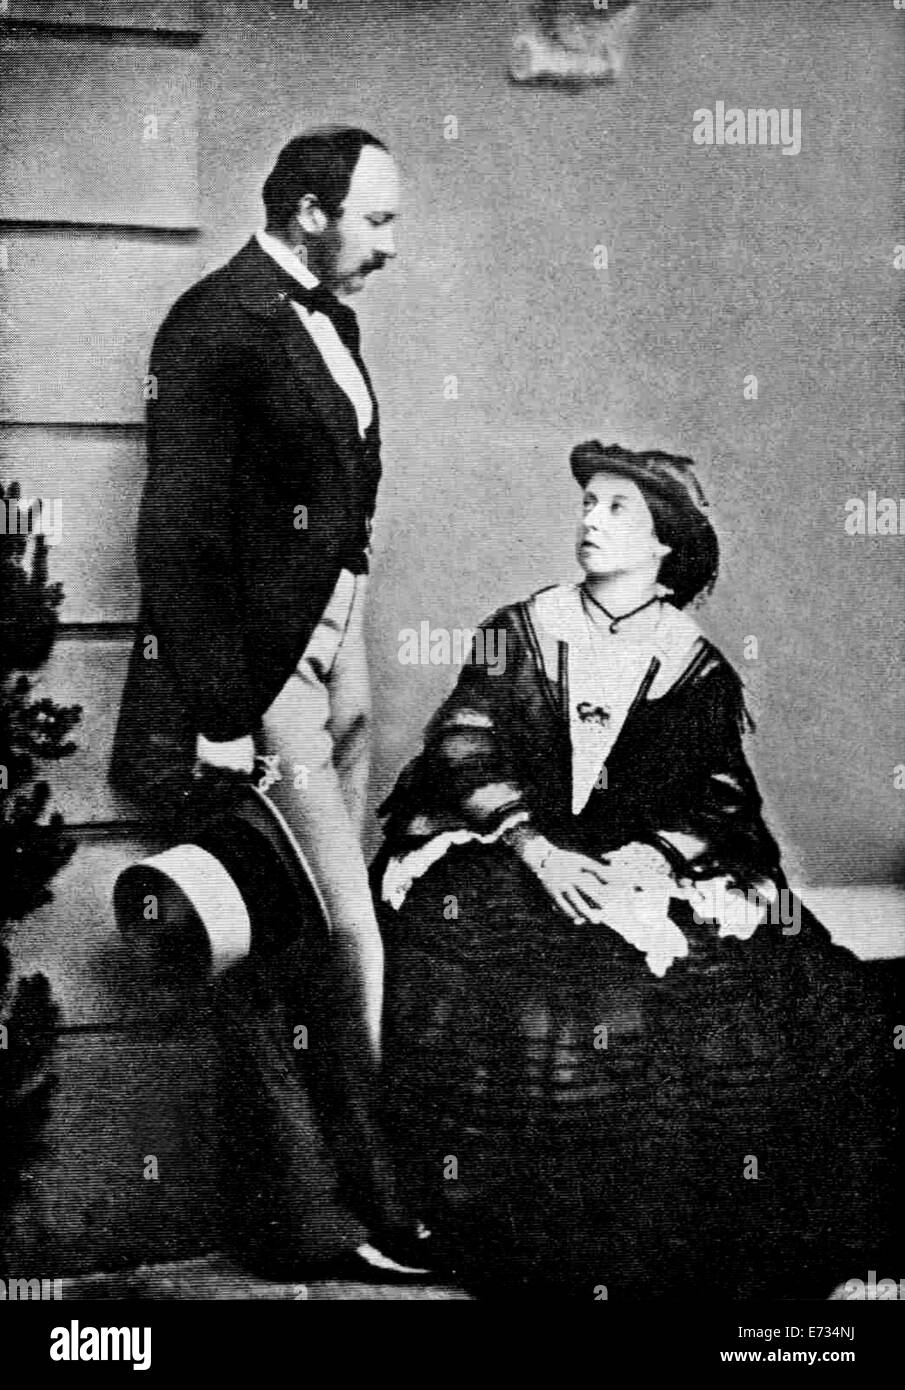 Prince Albert husband consort and Queen Victoria in 1860. From the archives of Press Portrait Service - Stock Image